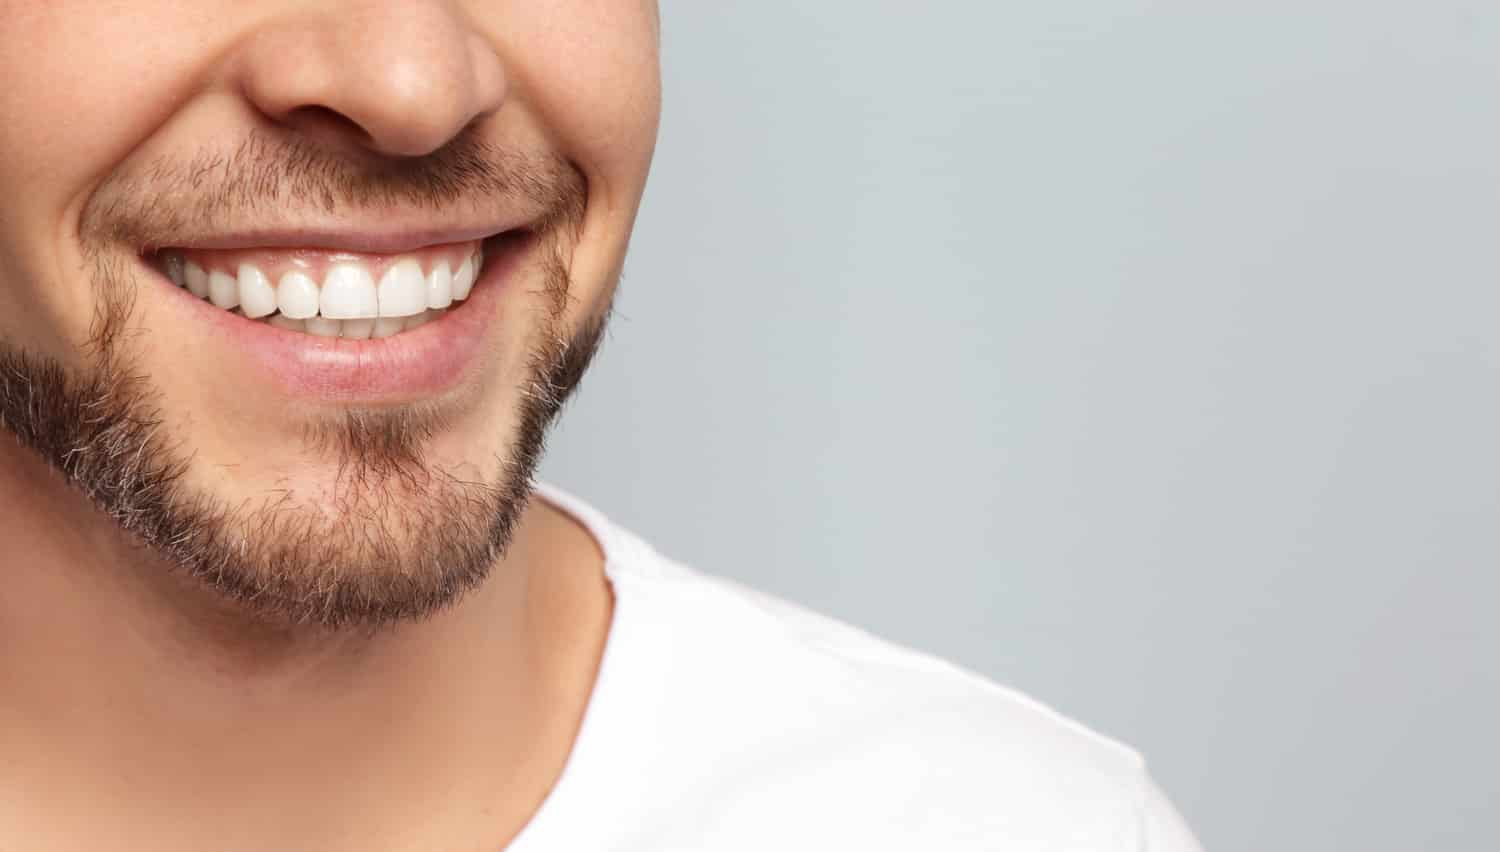 Using a Dental Implant for Tooth Replacement